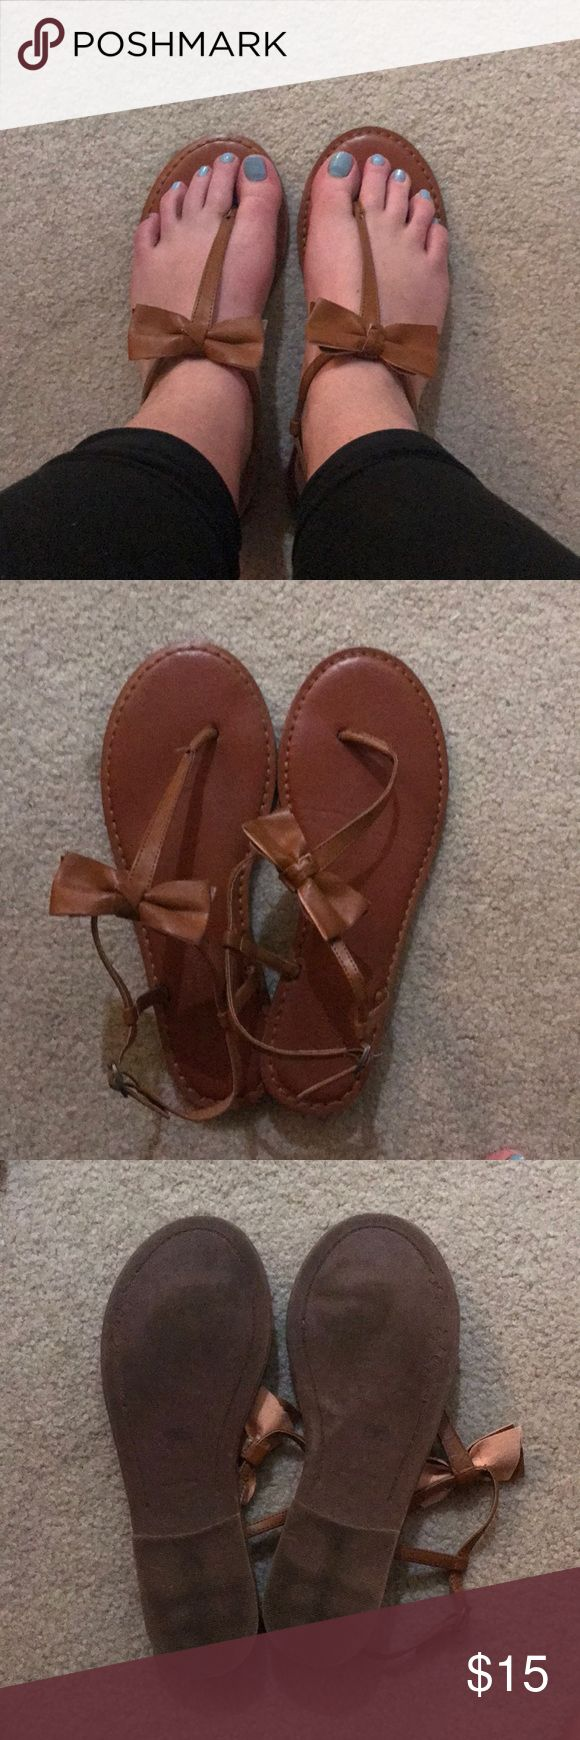 American Eagle Brown Bow Sandals - Size 9 Super comfortable! In Great Condition!   American Eagle Brown Bow Sandals - Size 9 American Eagle Outfitters Shoes Sandals